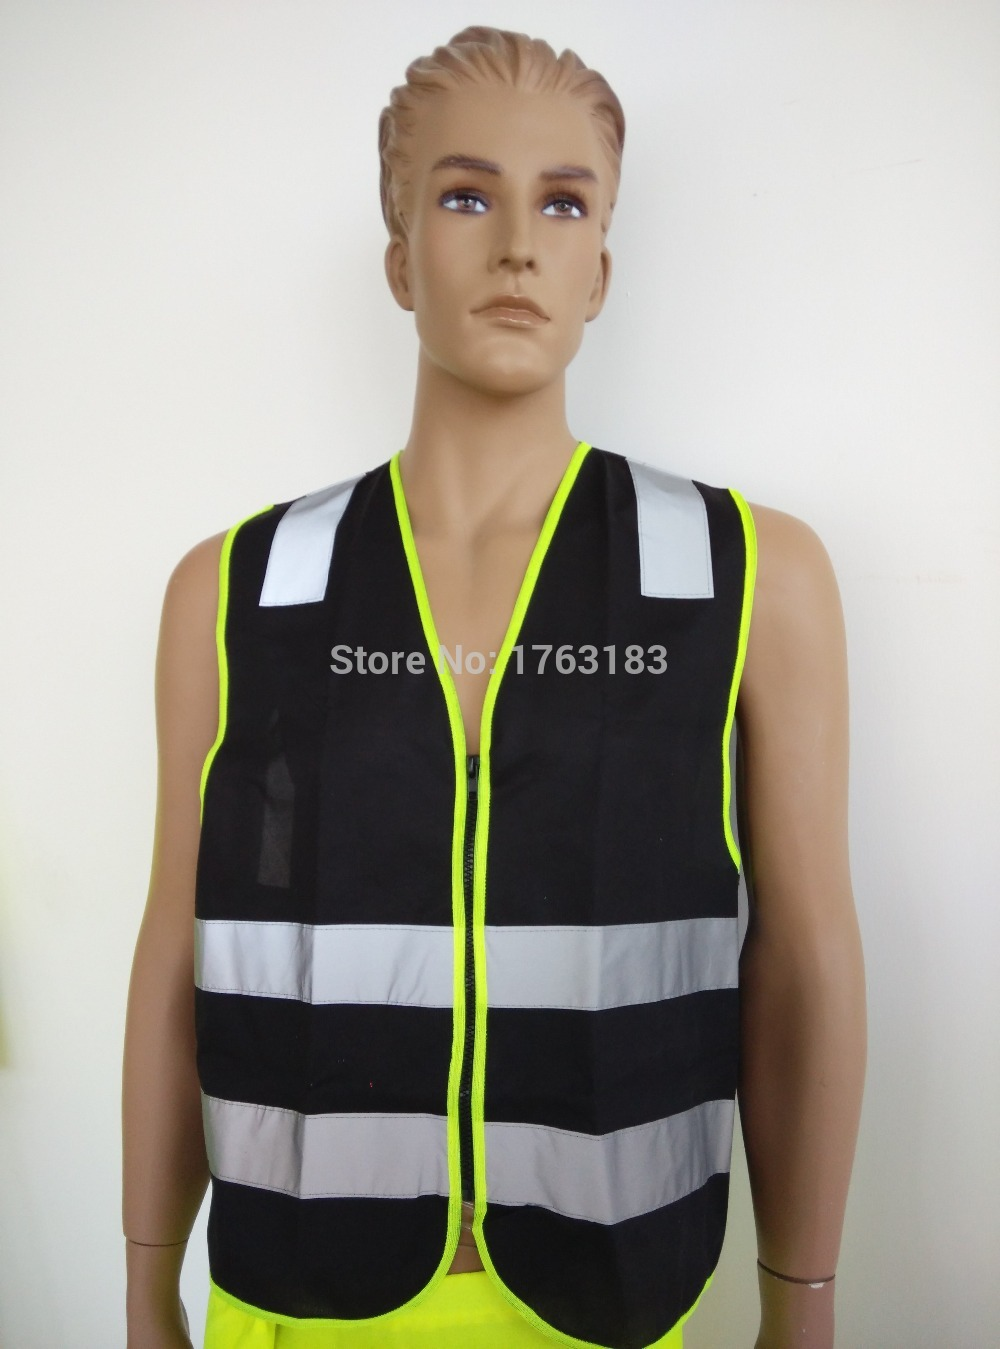 Black High Visibility Reflective Safety Vest Polyester Dark Night Working fluorescence yellow high visibility